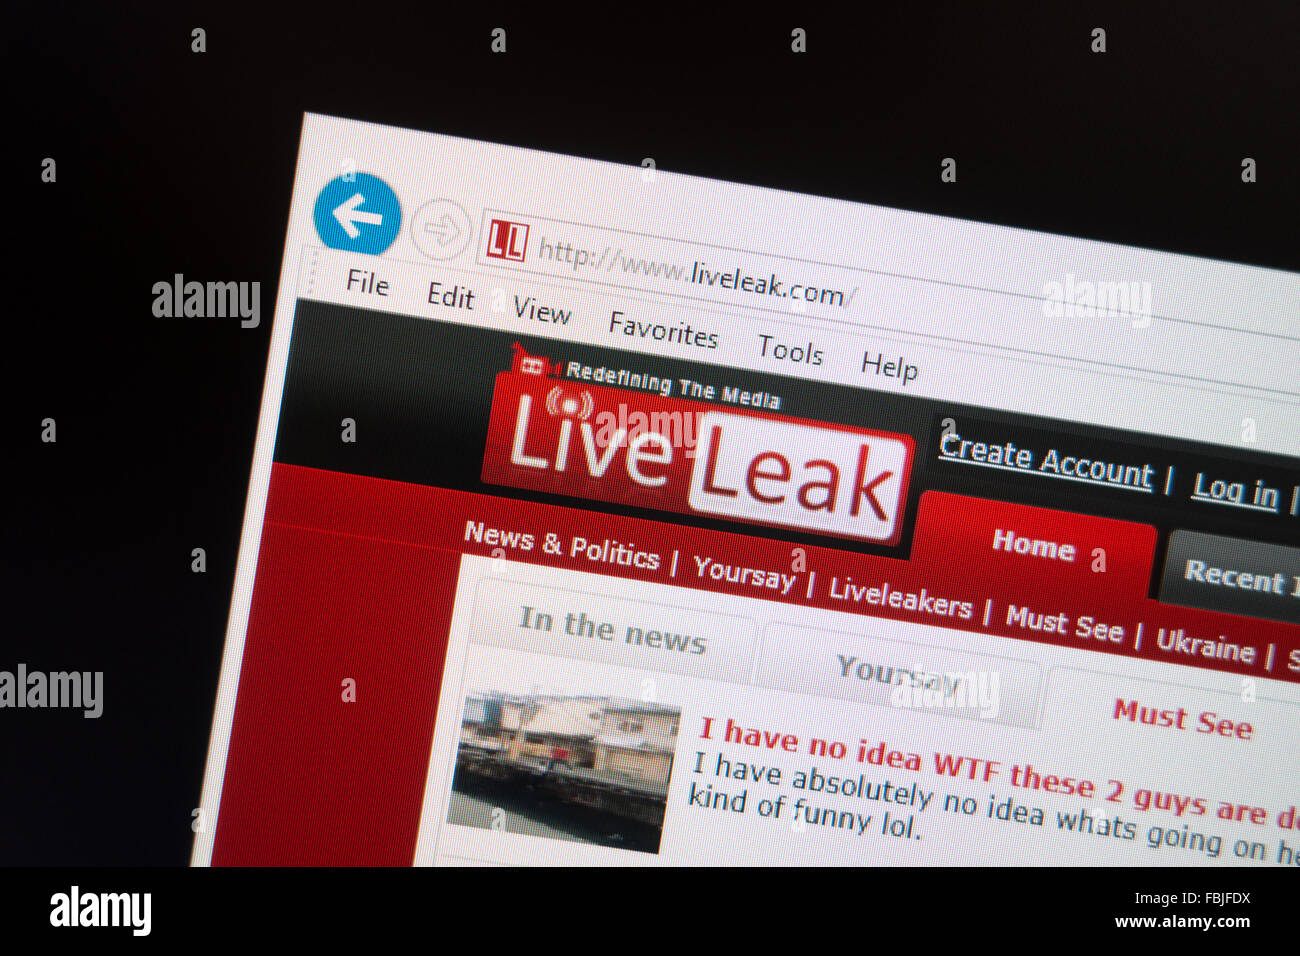 live leak website - Stock Image